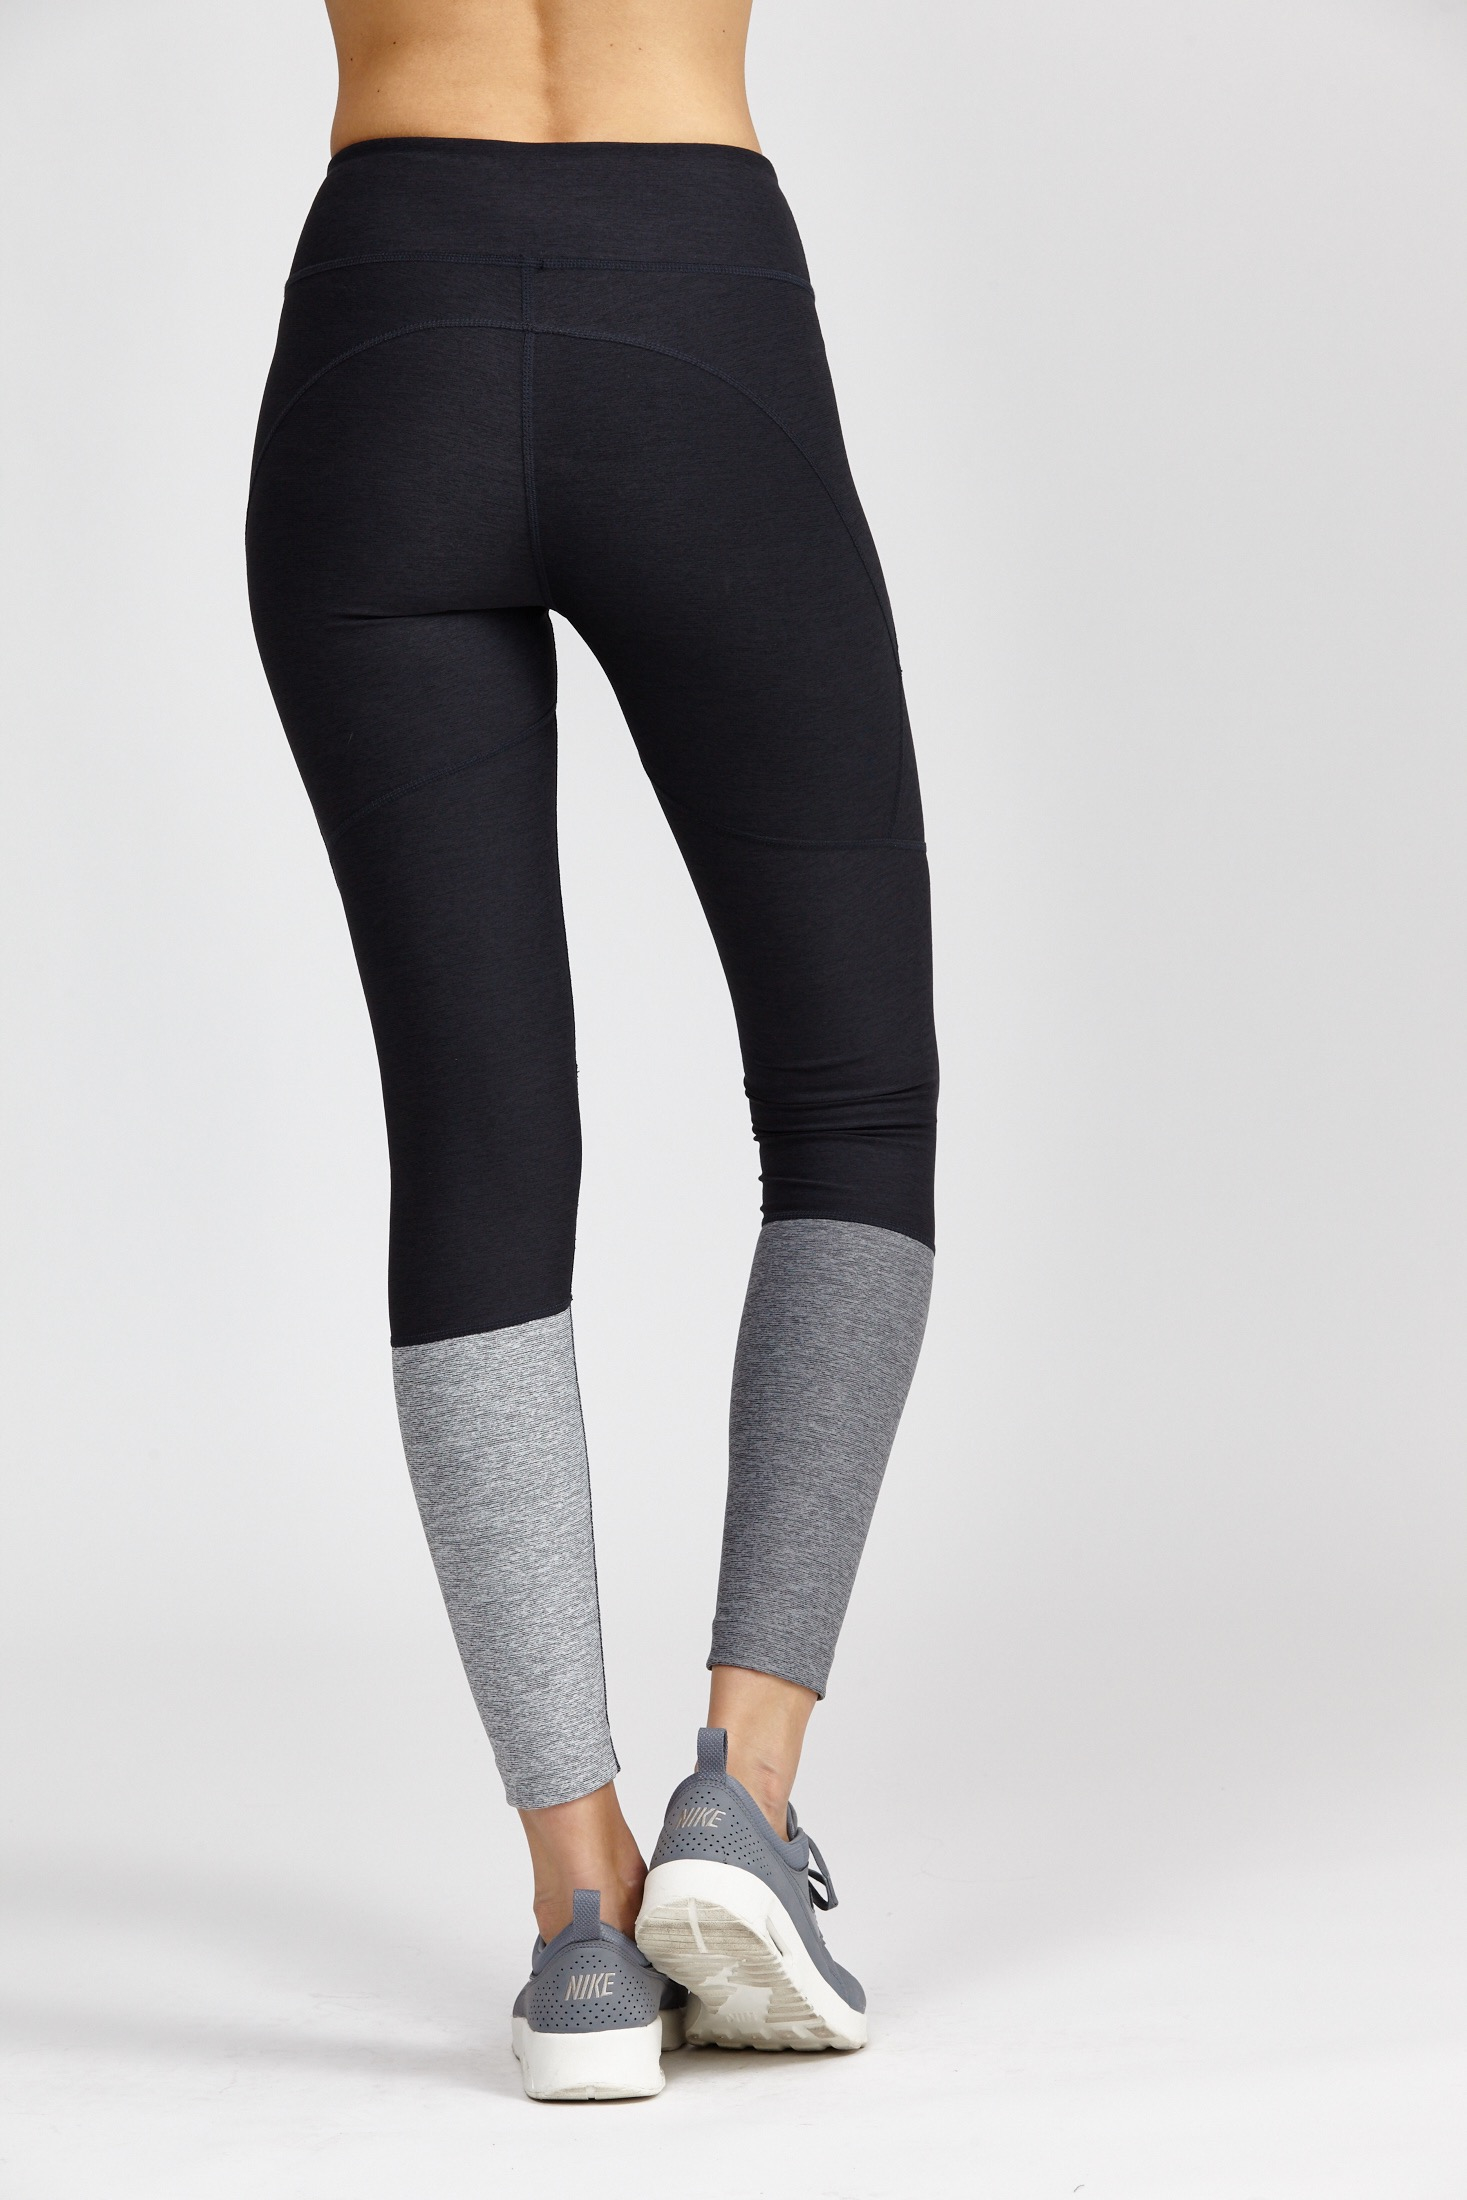 4f96735a5a5ea Outdoor Voices Dipped Warmup Legging in Gray - Lyst